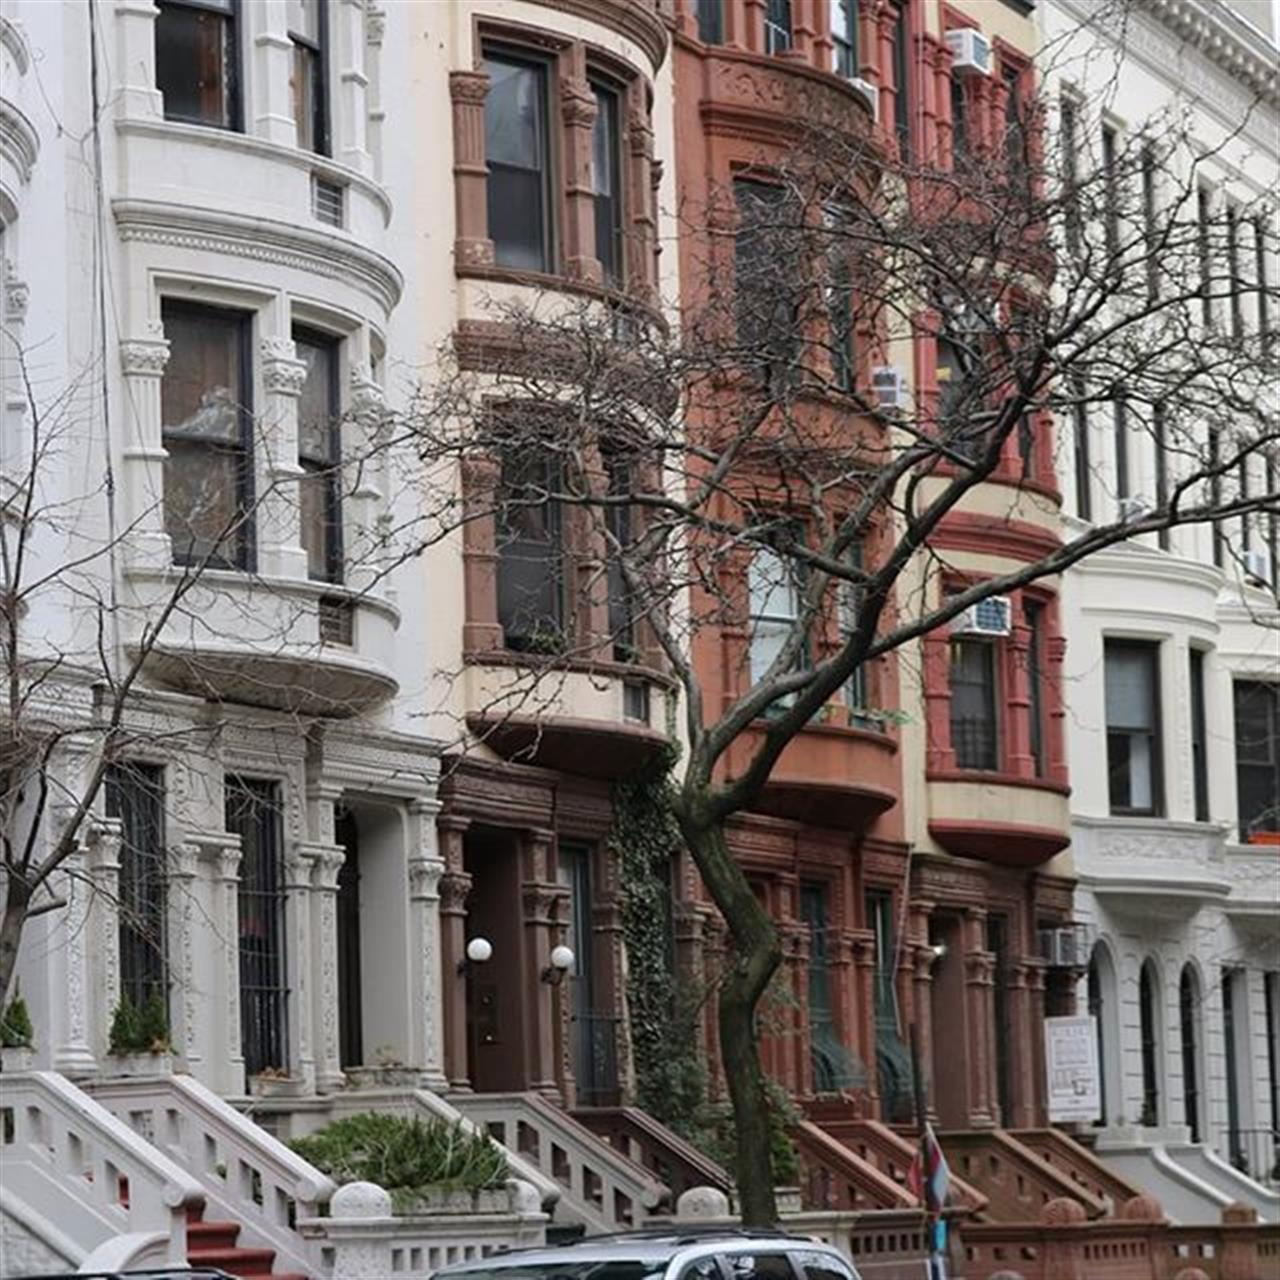 #upperwestside #nycstreets #nyclifestyle #Exploreyourhood #leadingrelocal #houses #nychouses #trees #nyc #townhouses #nycarchitecture